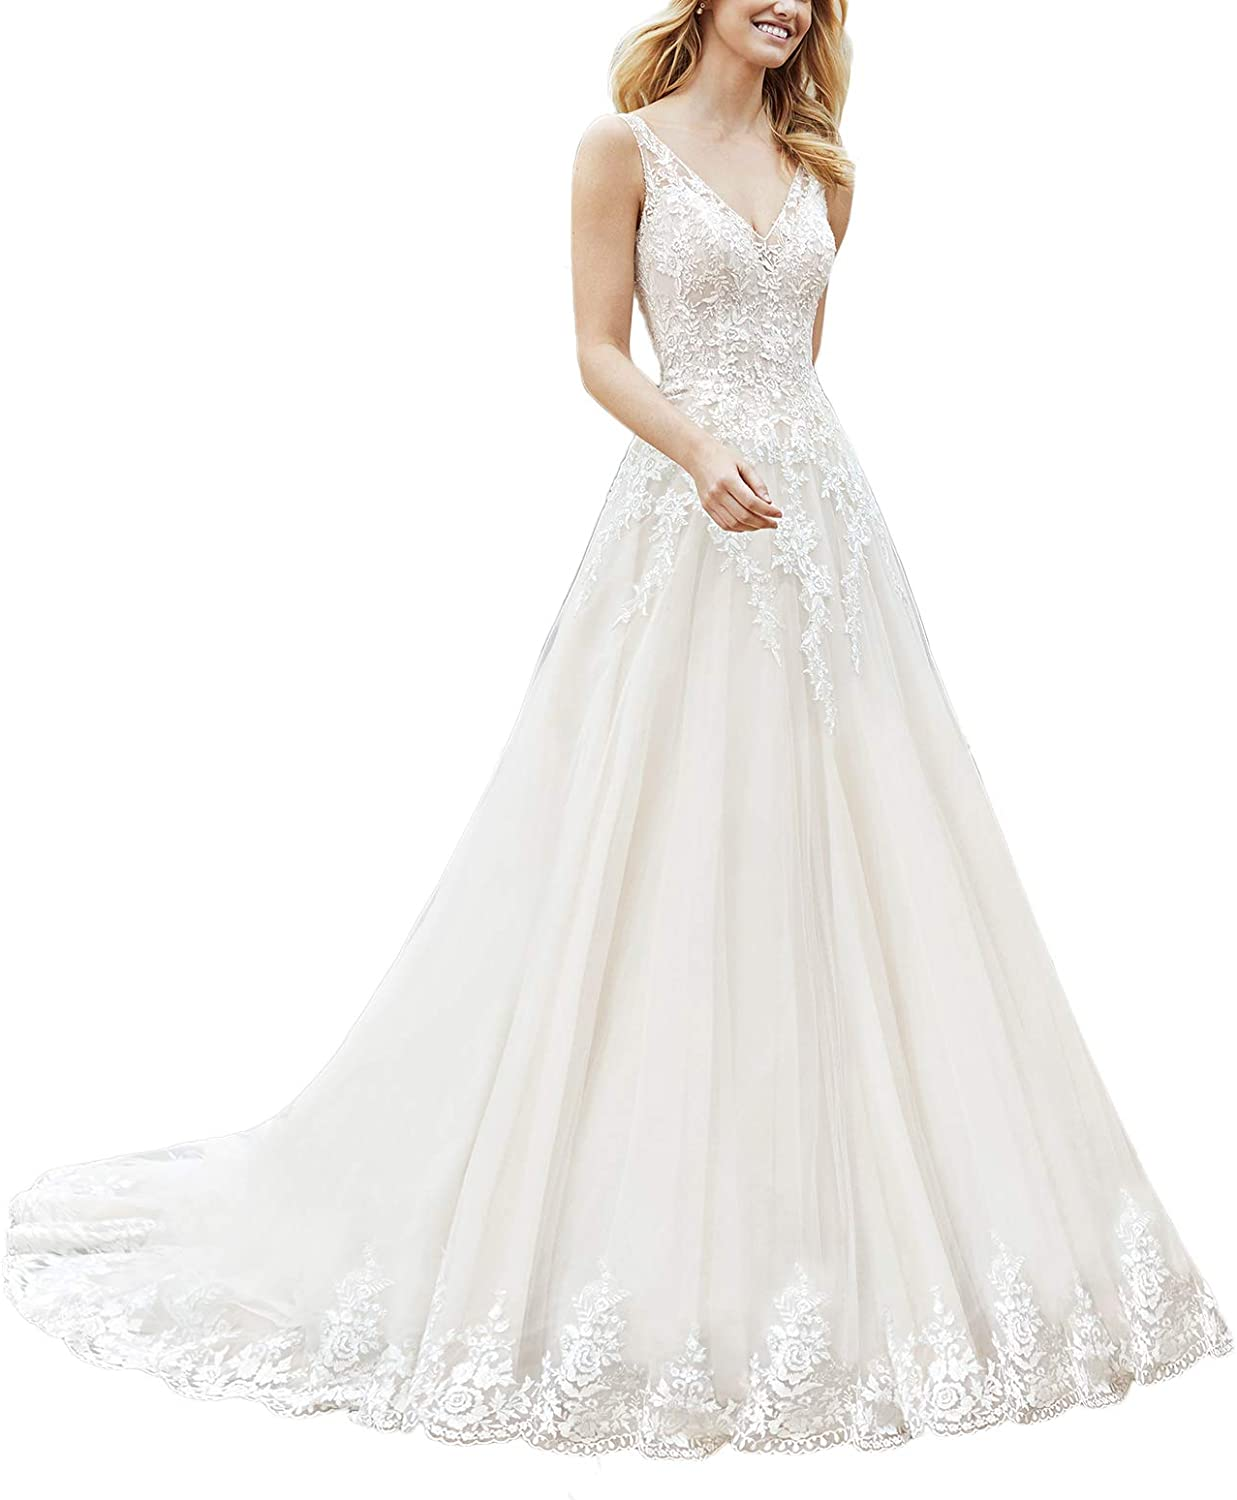 Yisha Bello Women's Long Tail VNeck Lace Wedding Dress for Bride Long ALine Tulle Bridal Gown